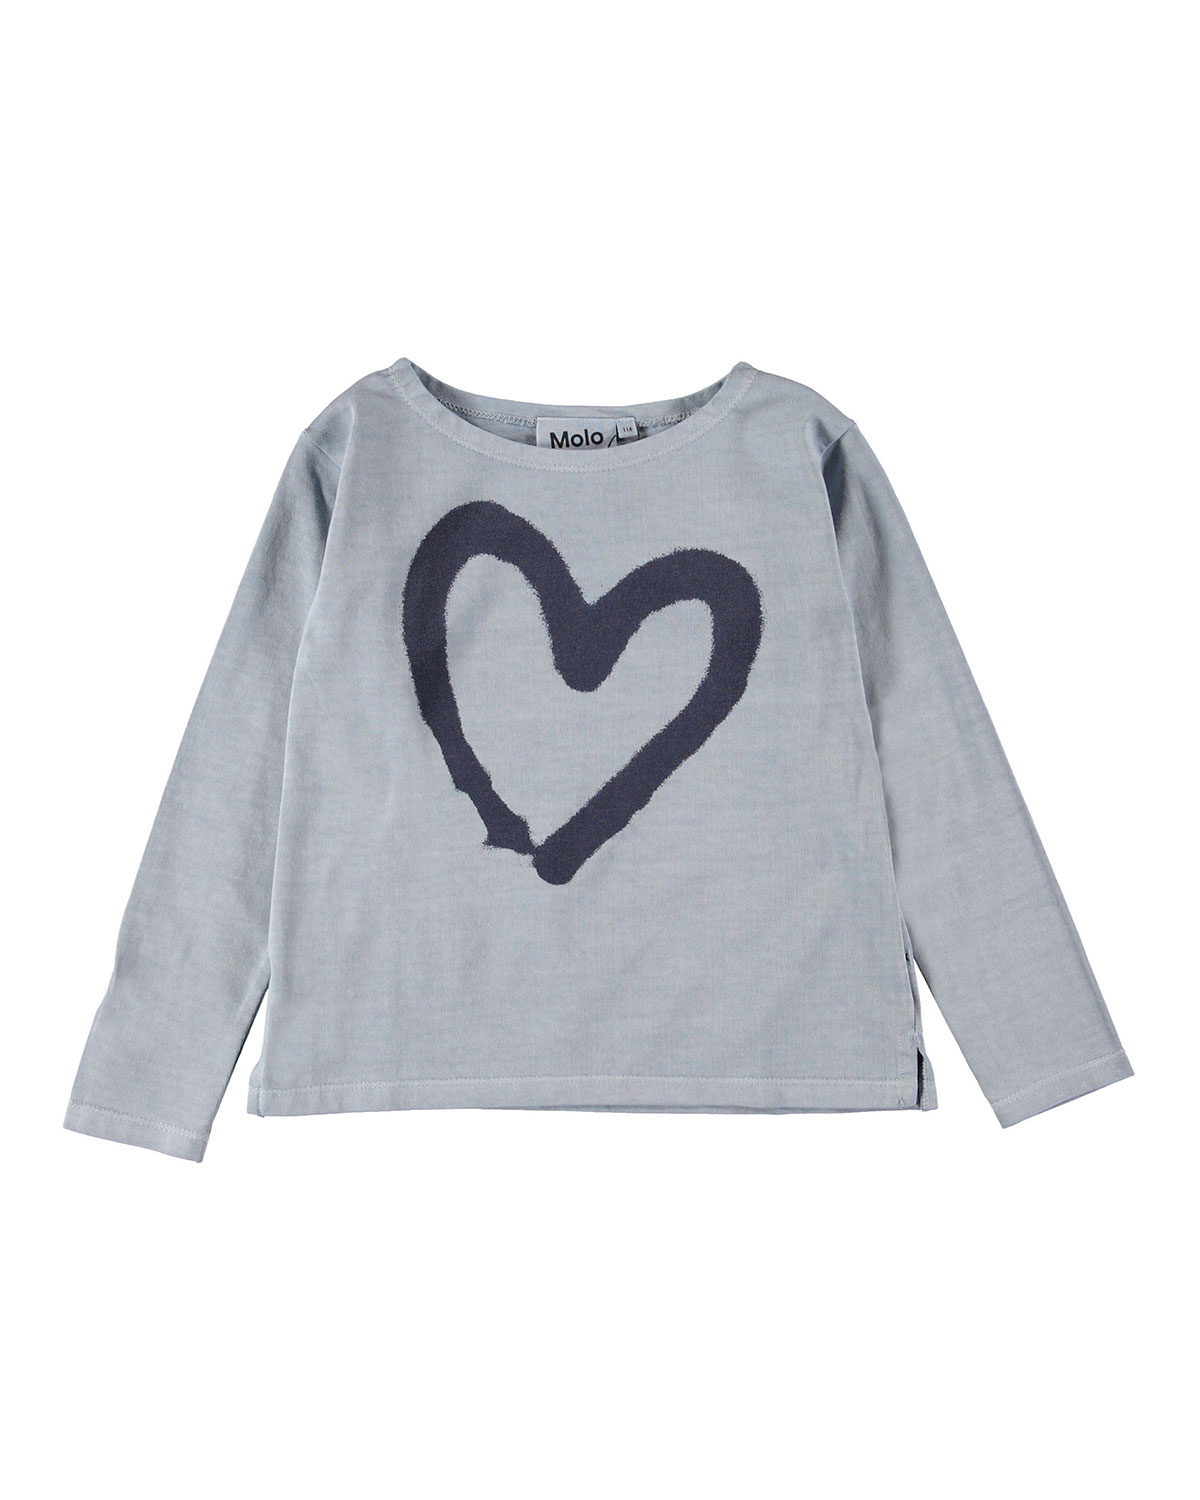 Molo RAMILAH HEART GRAPHIC LONG-SLEEVE TEE